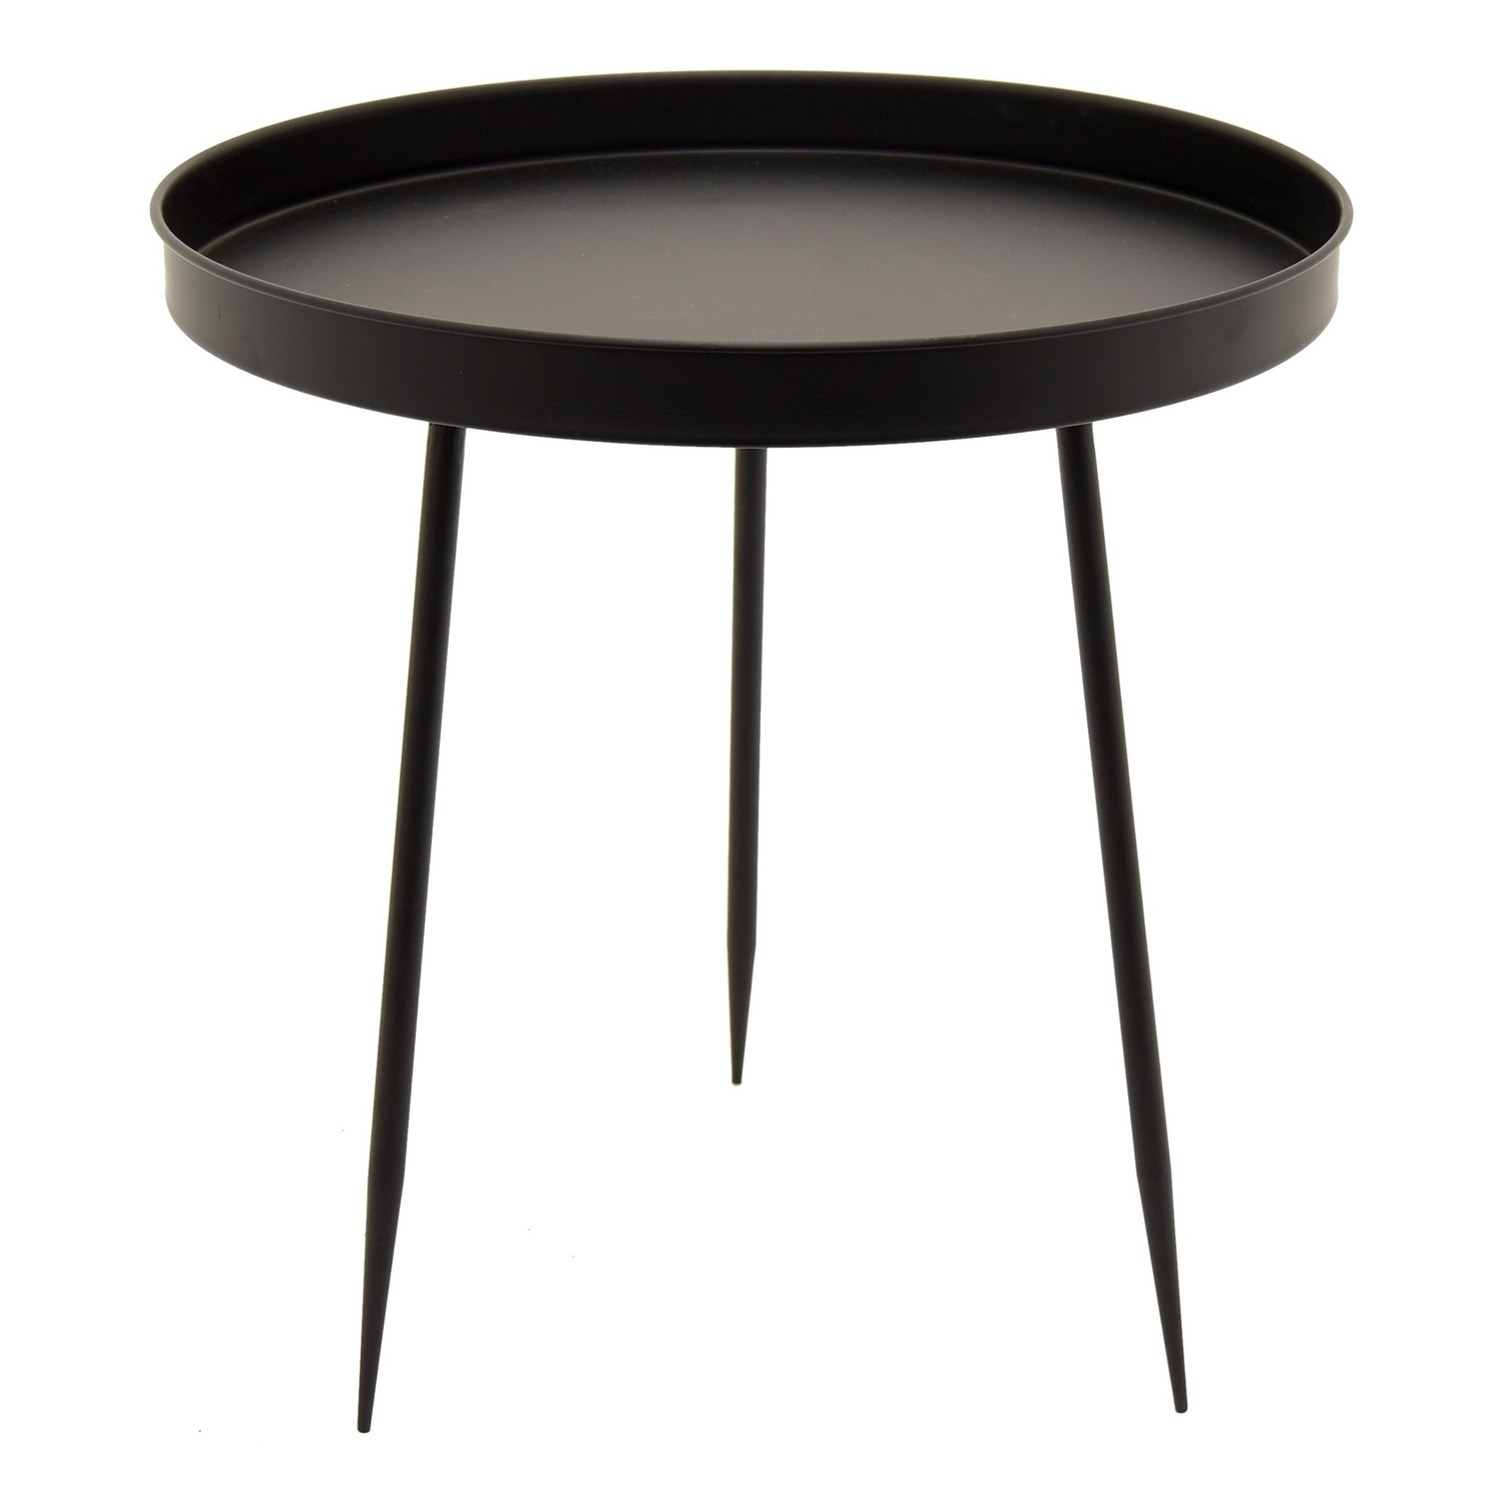 three hands decorative black metal accent table free shipping today support leg frog drum transition floor trim tray end plastic wicker side silver lamps asian style narrow